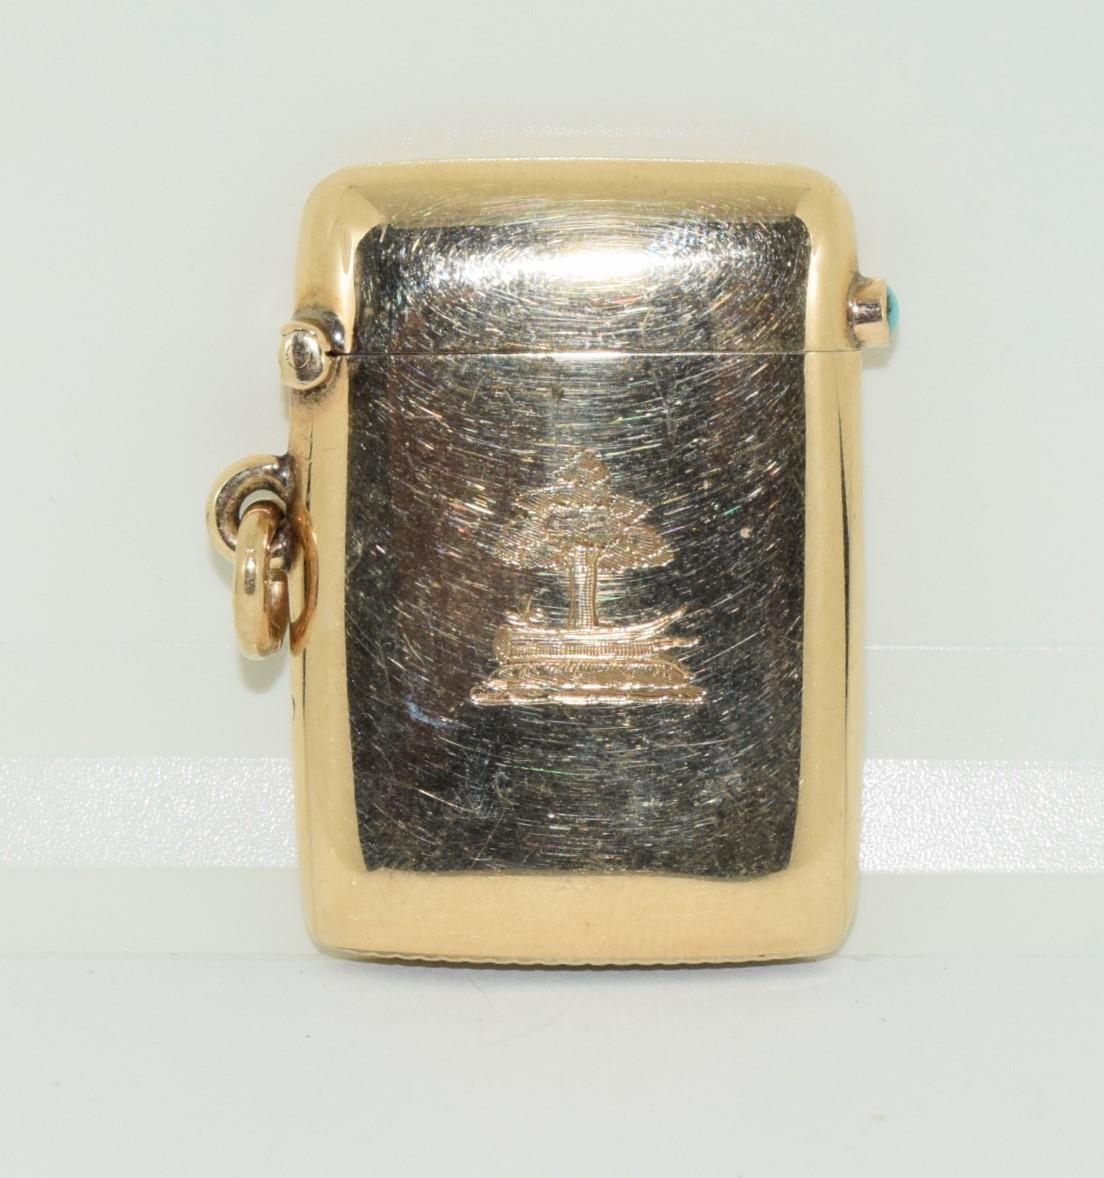 9ct gold Vesta case with a turquoise cabochon fully hallmarked for London 1878 by George Gray